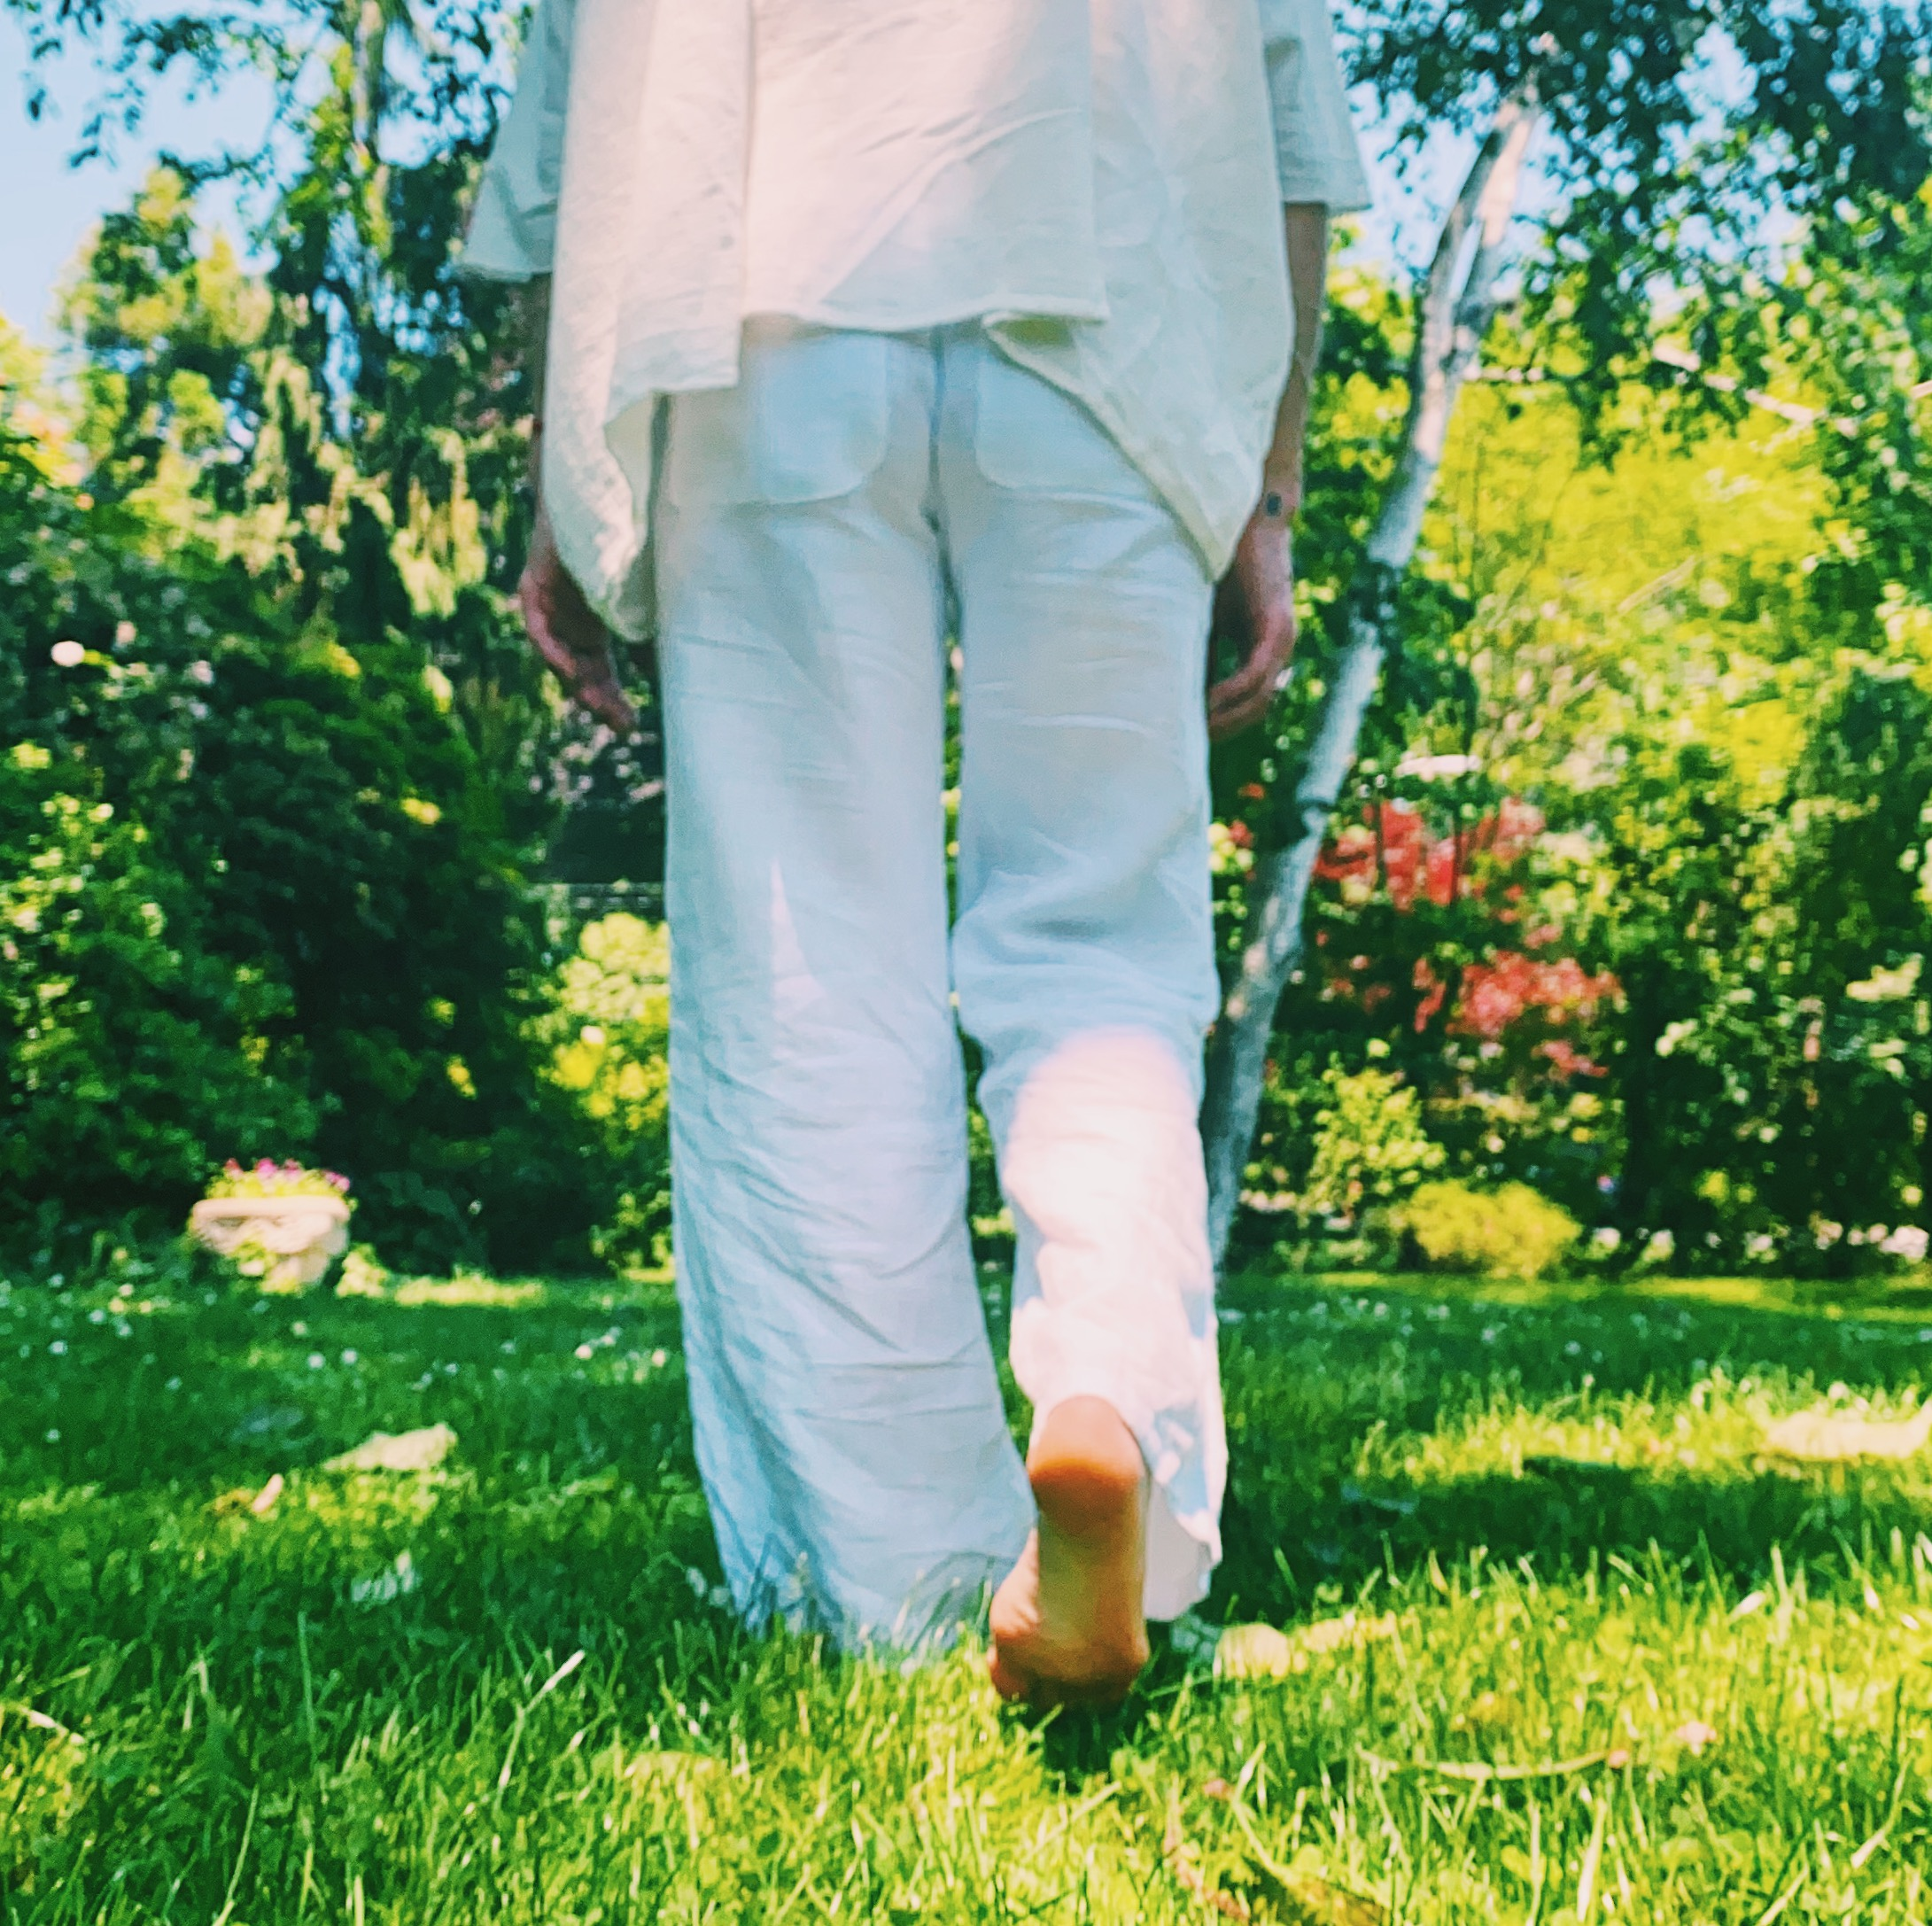 picture of Robin from shoulders down barefoot wearing loose white clothing taking a step in the lush green grass